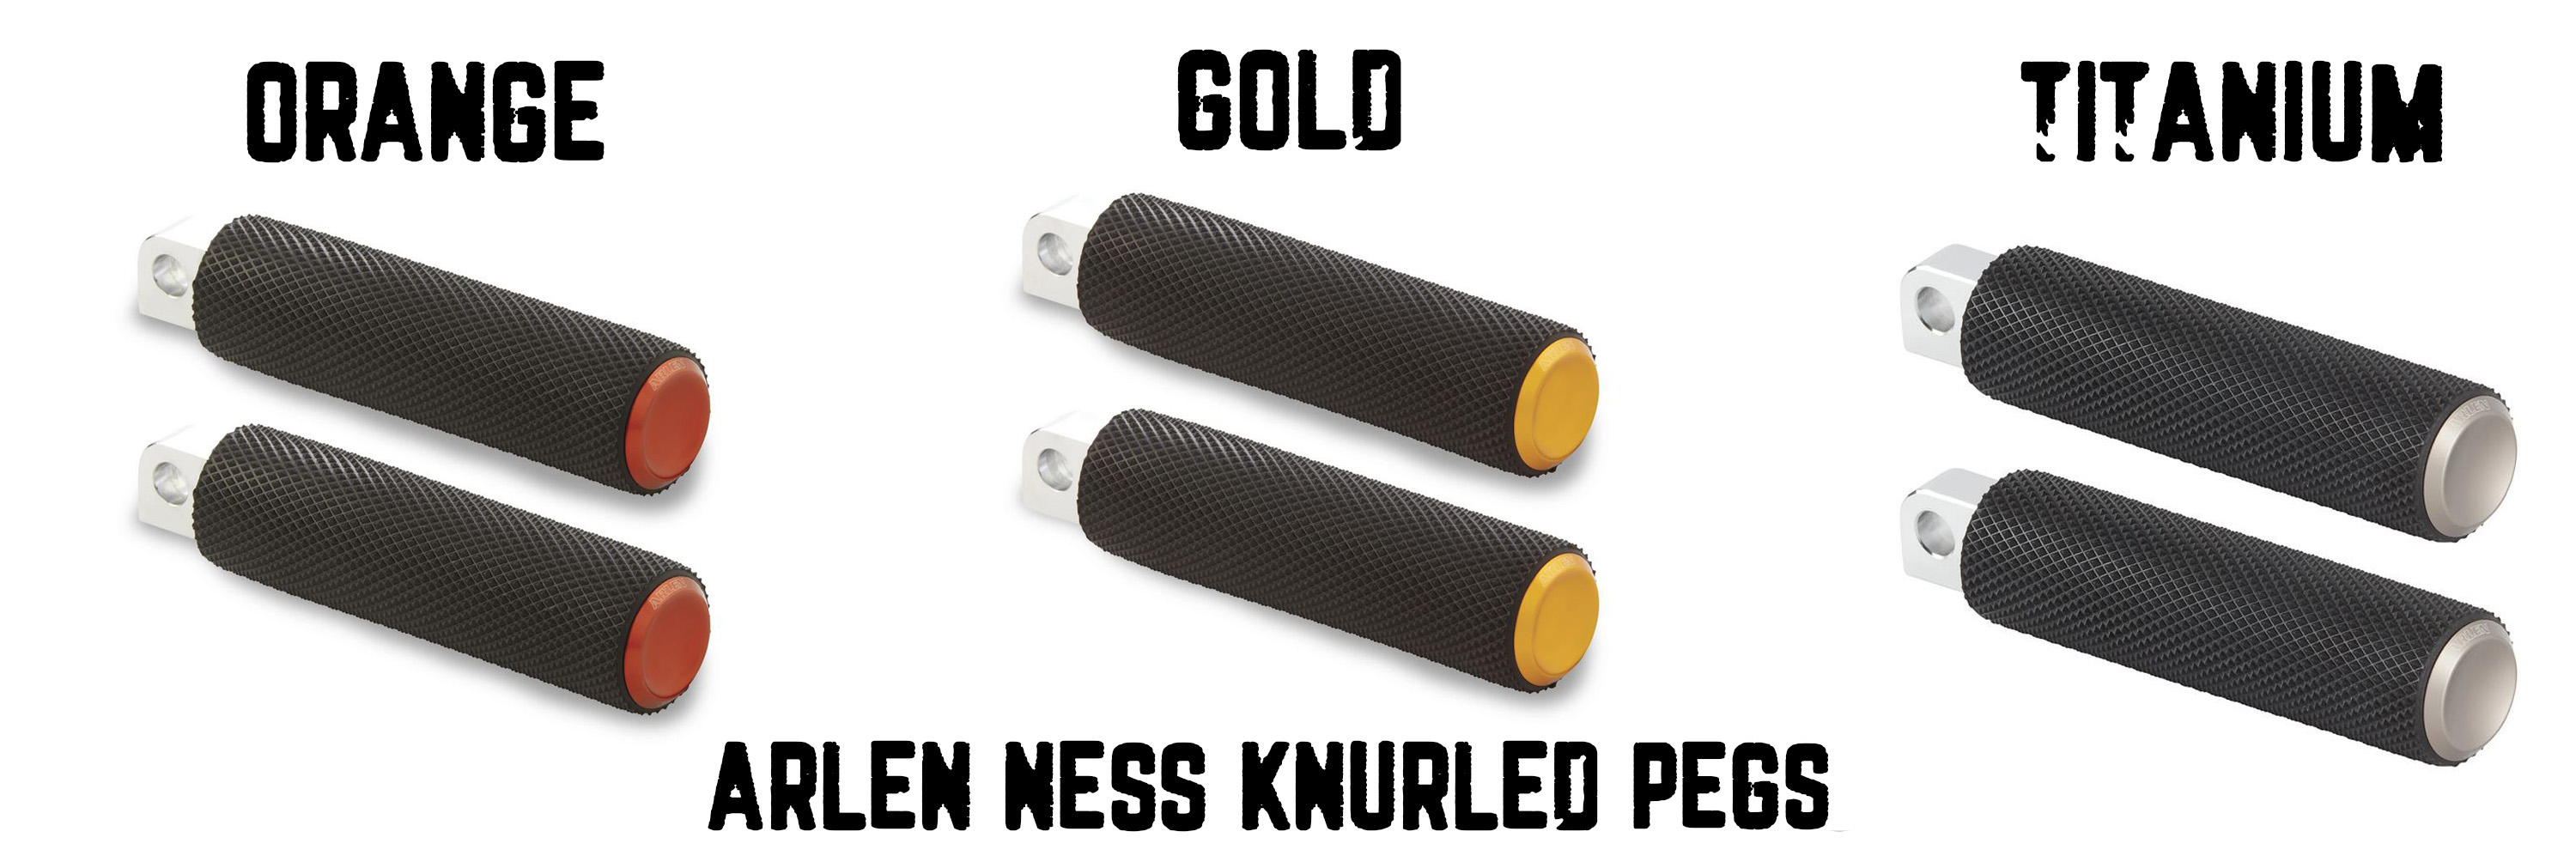 Arlen Ness Knurled Fusion Foot Pegs for Harley Models